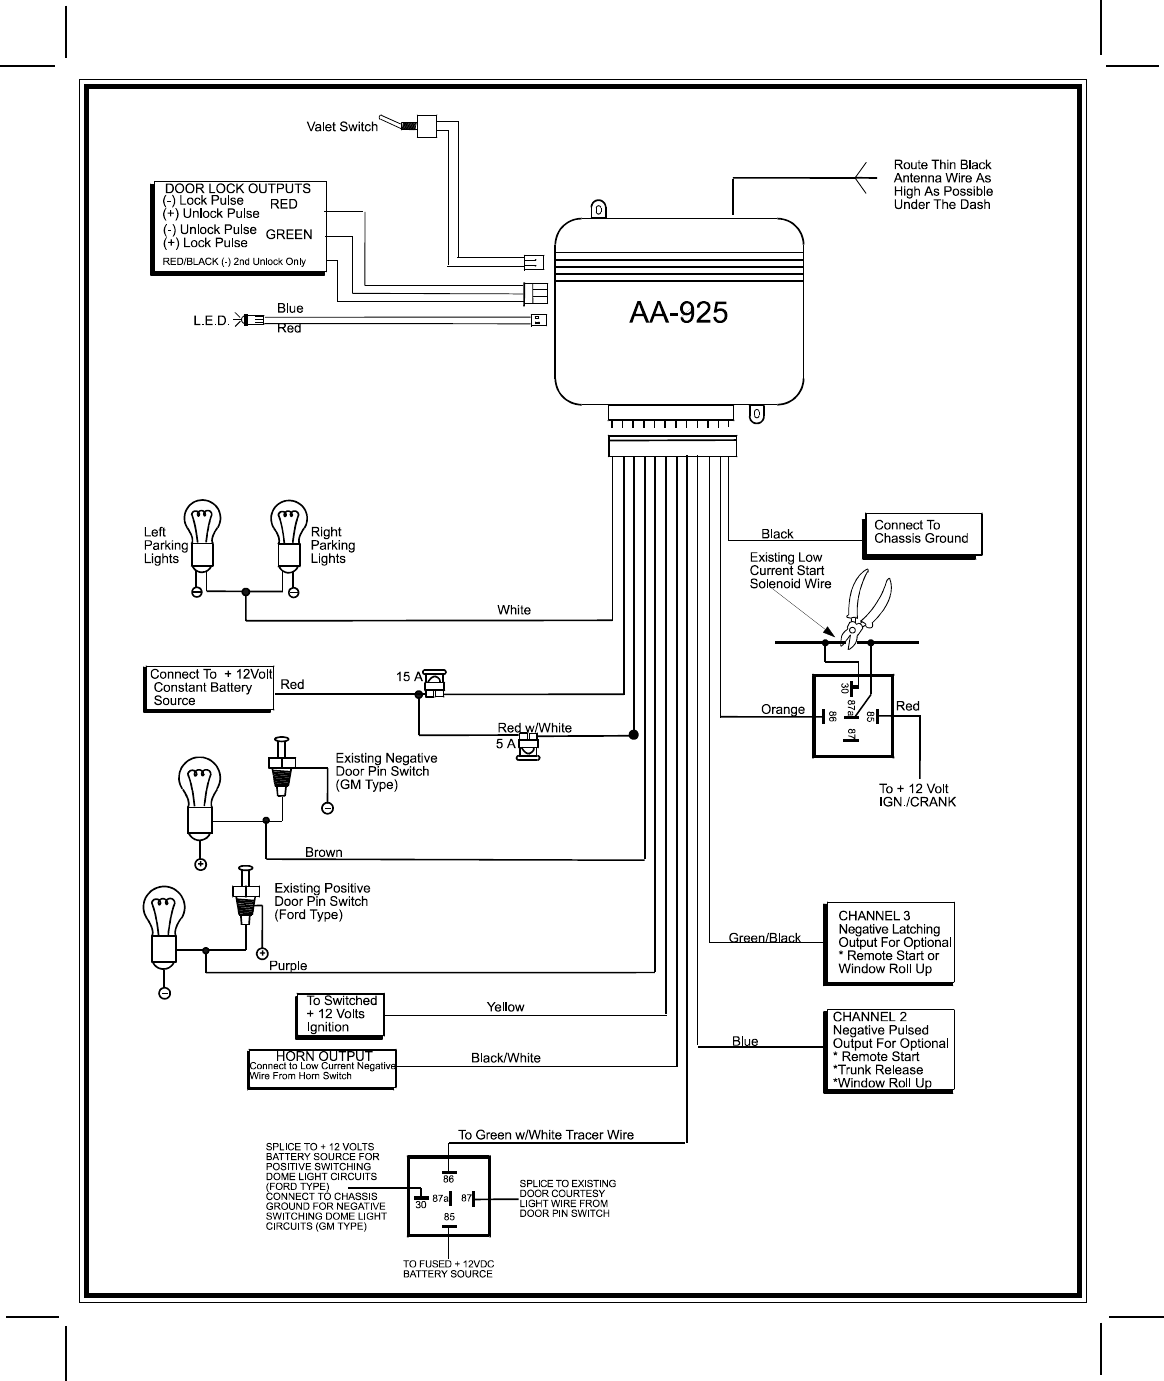 728e5939 5a52 46a4 ba14 2e72baef2843 bg8 uniden car alarm wiring diagram uniden wiring diagrams collection sparkrite car alarm wiring diagram at fashall.co